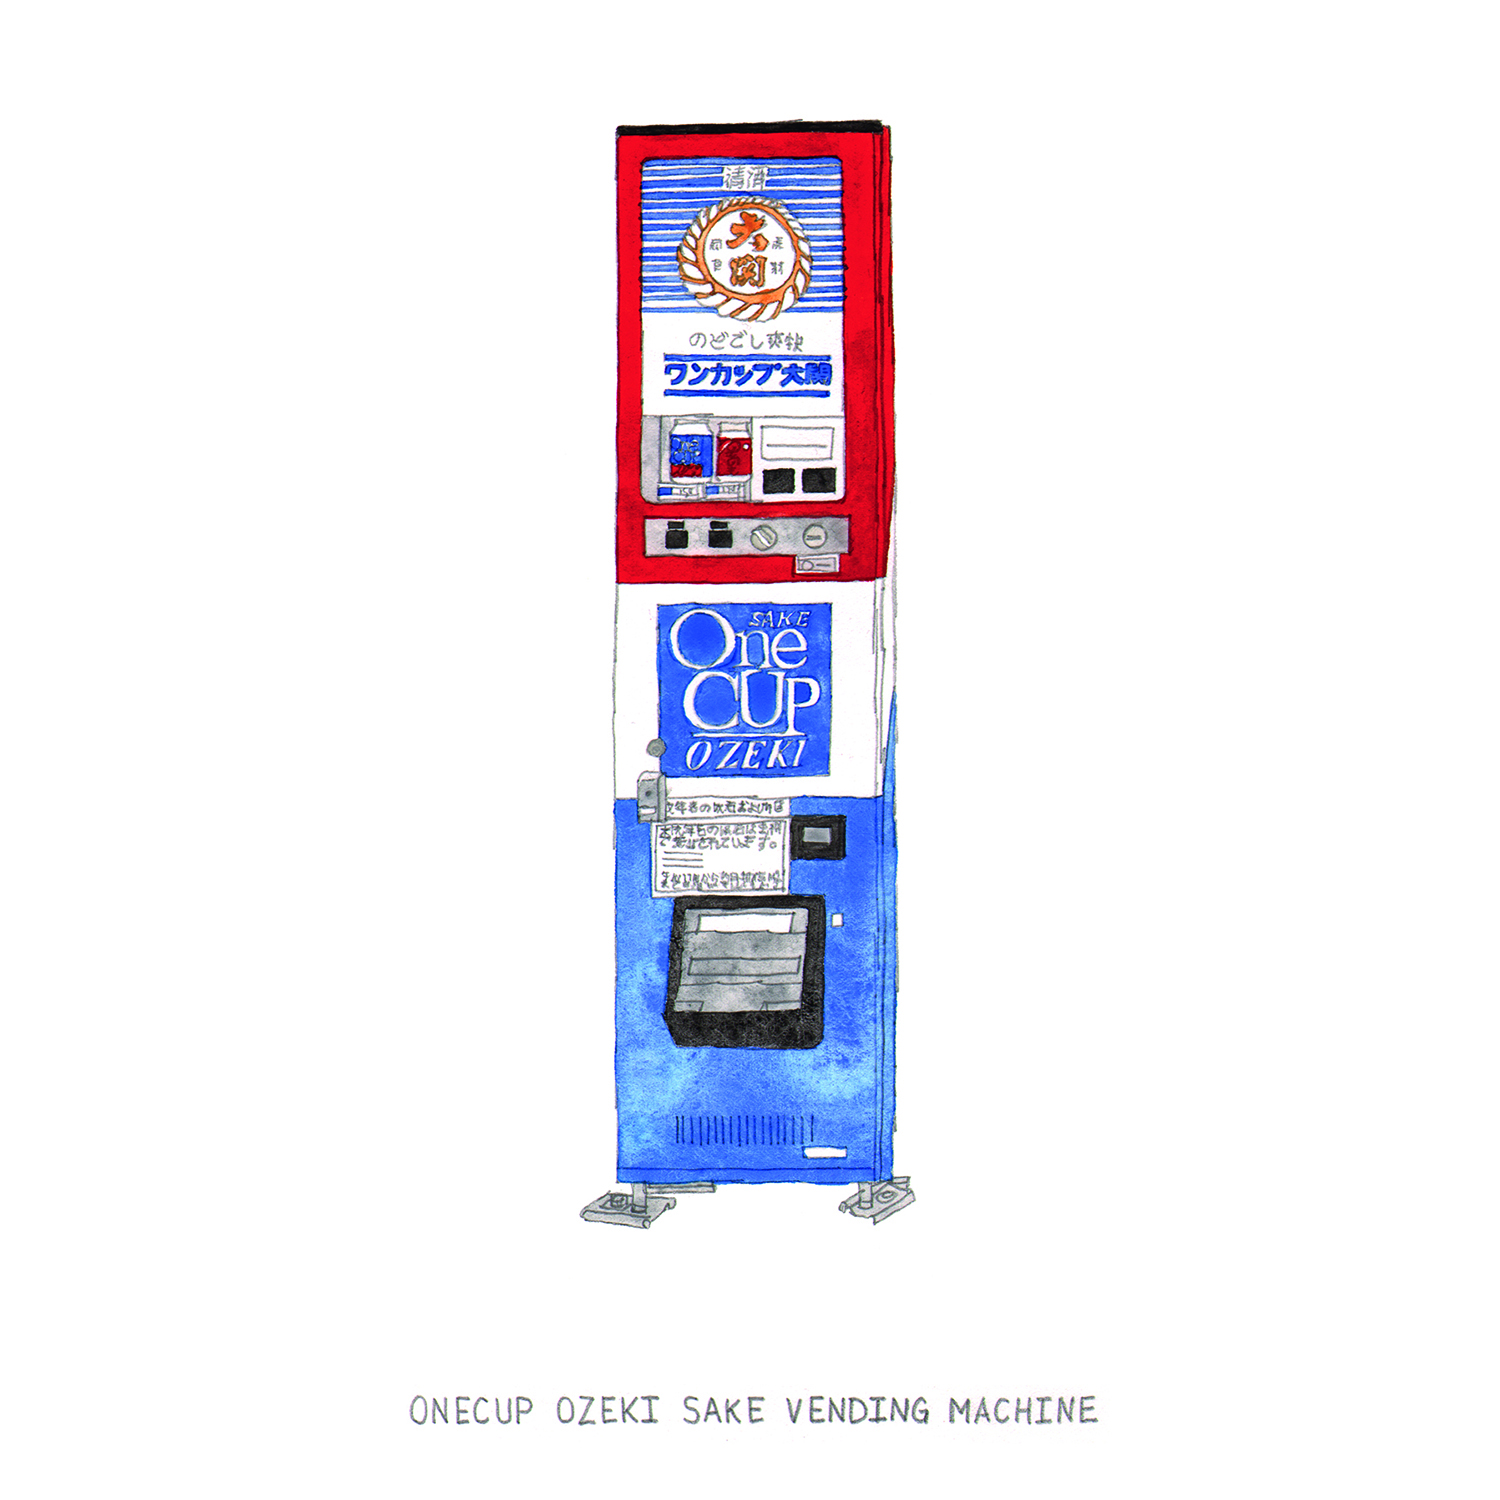 one cup ozeke vending illustration.jpg